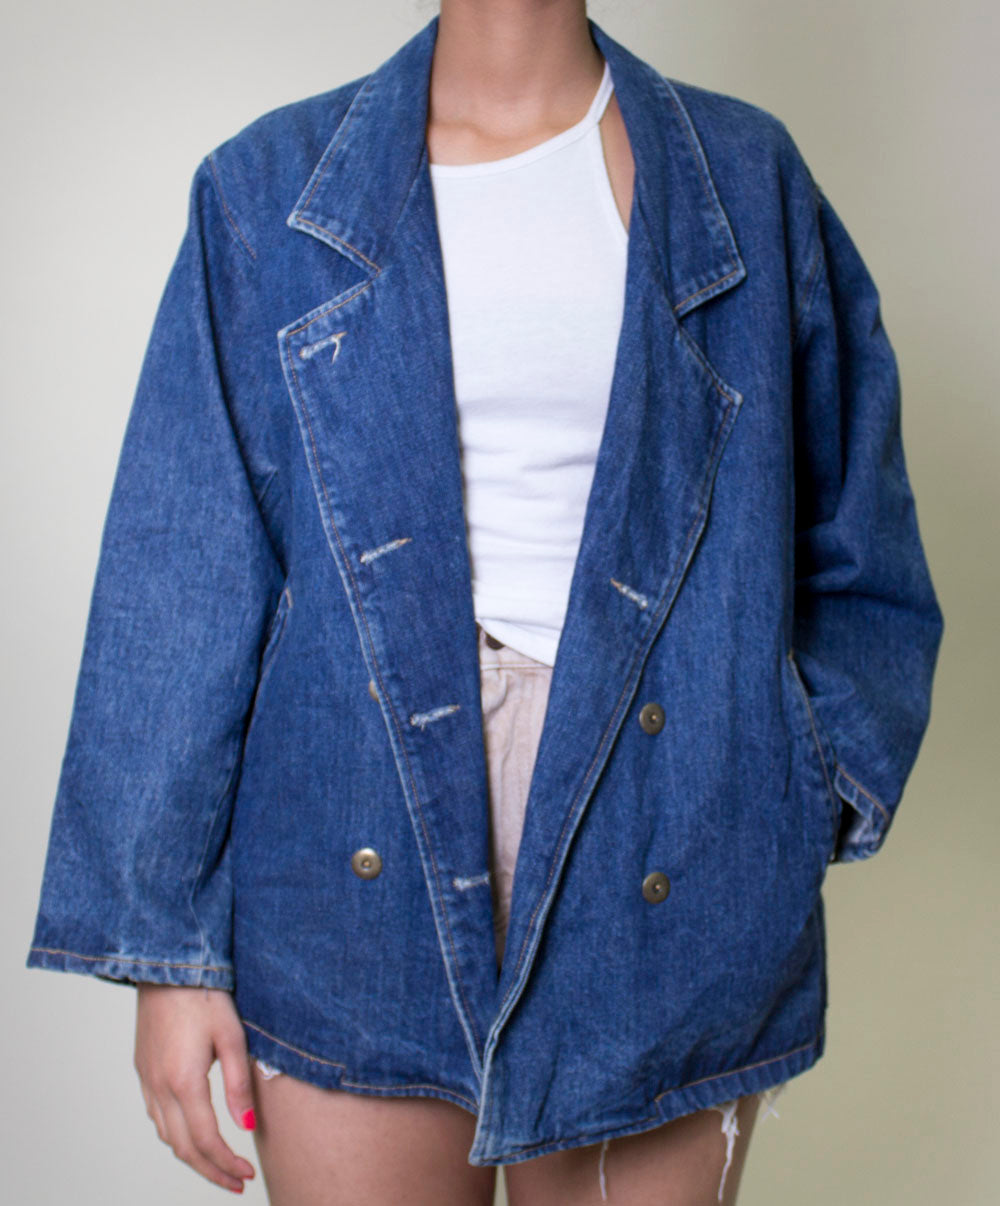 Guess Denim Blazer